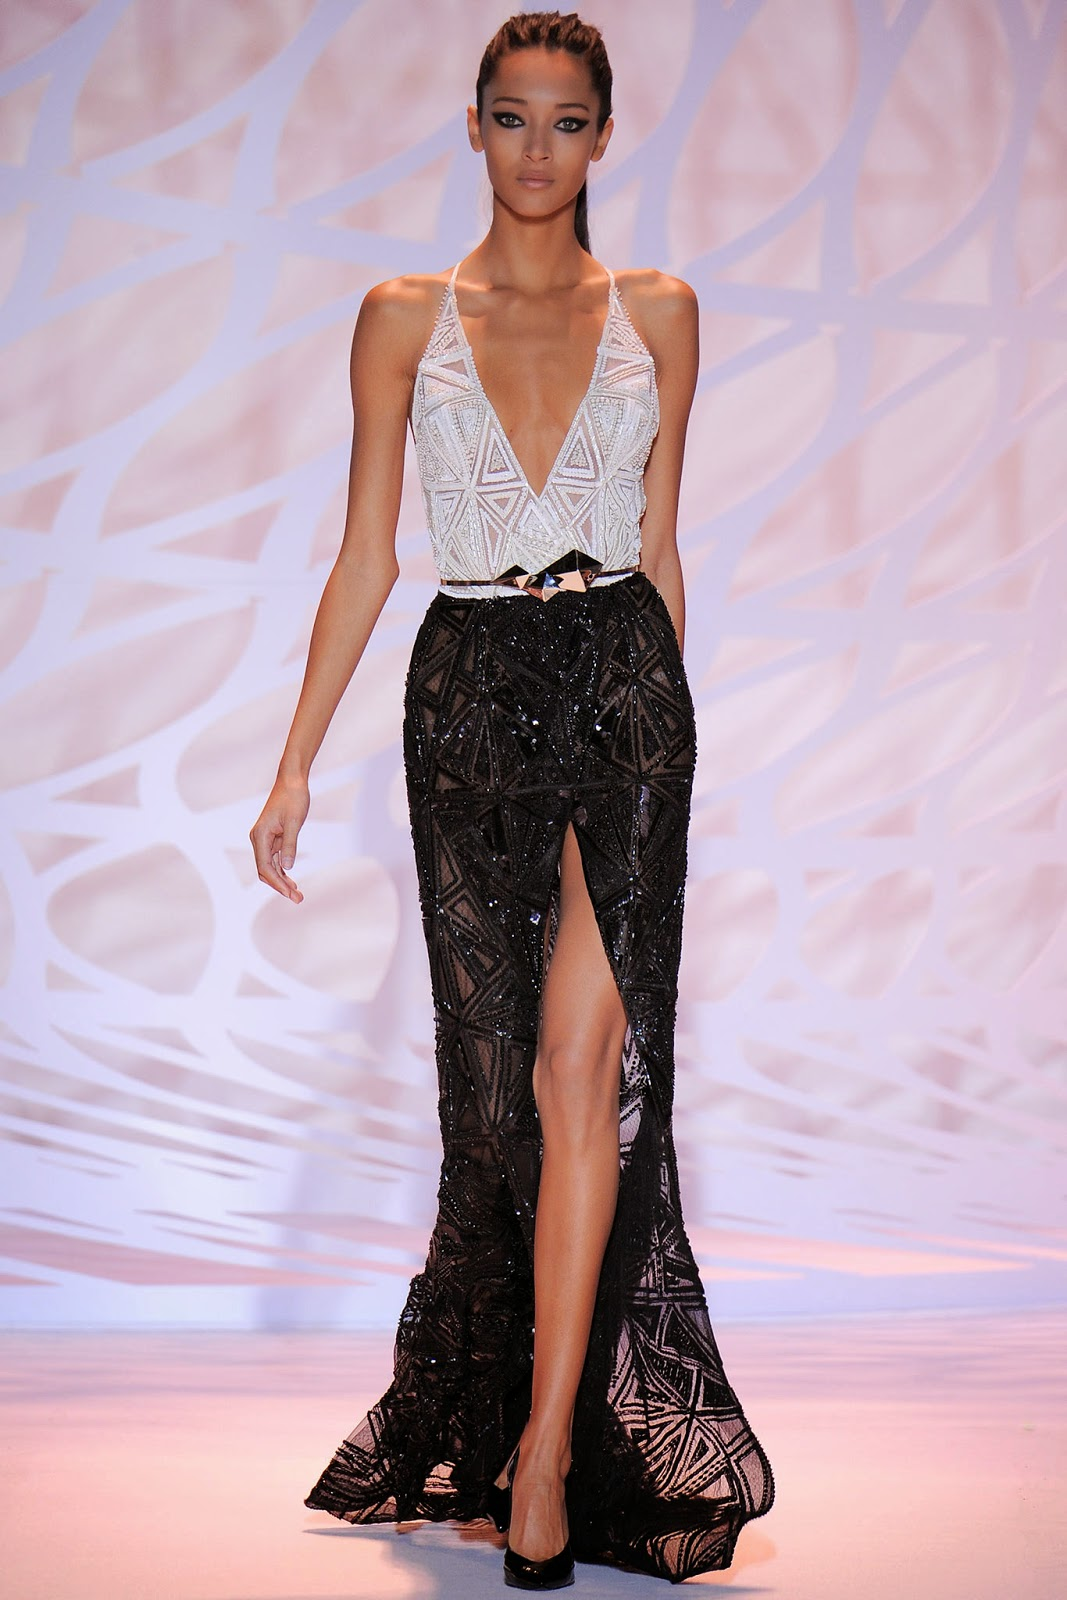 Sashes and tiaras miss lebanon 2014 pageant gowns for O couture fashion